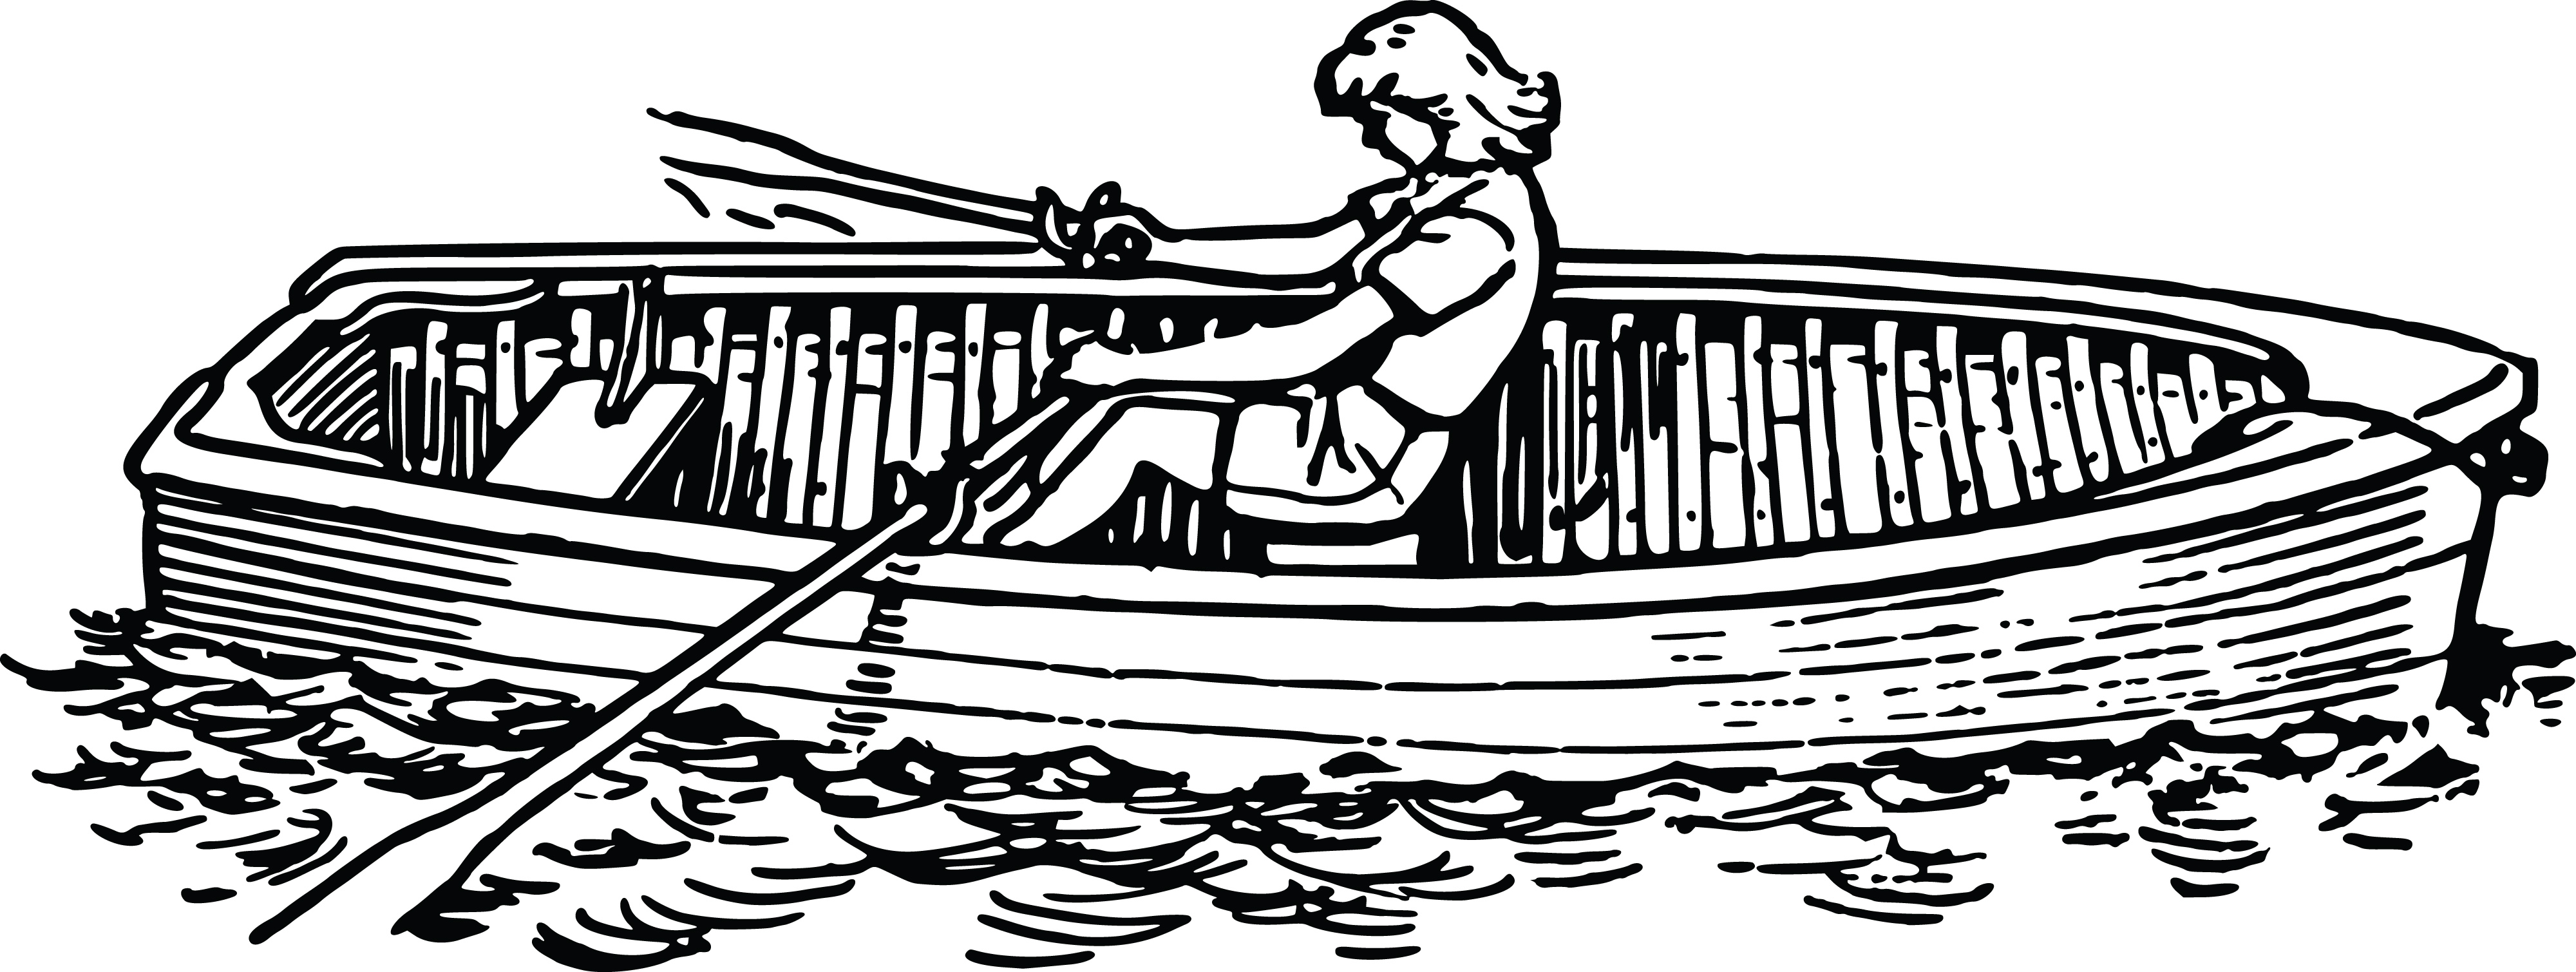 Free Clipart Of A Woman Rowing Boat